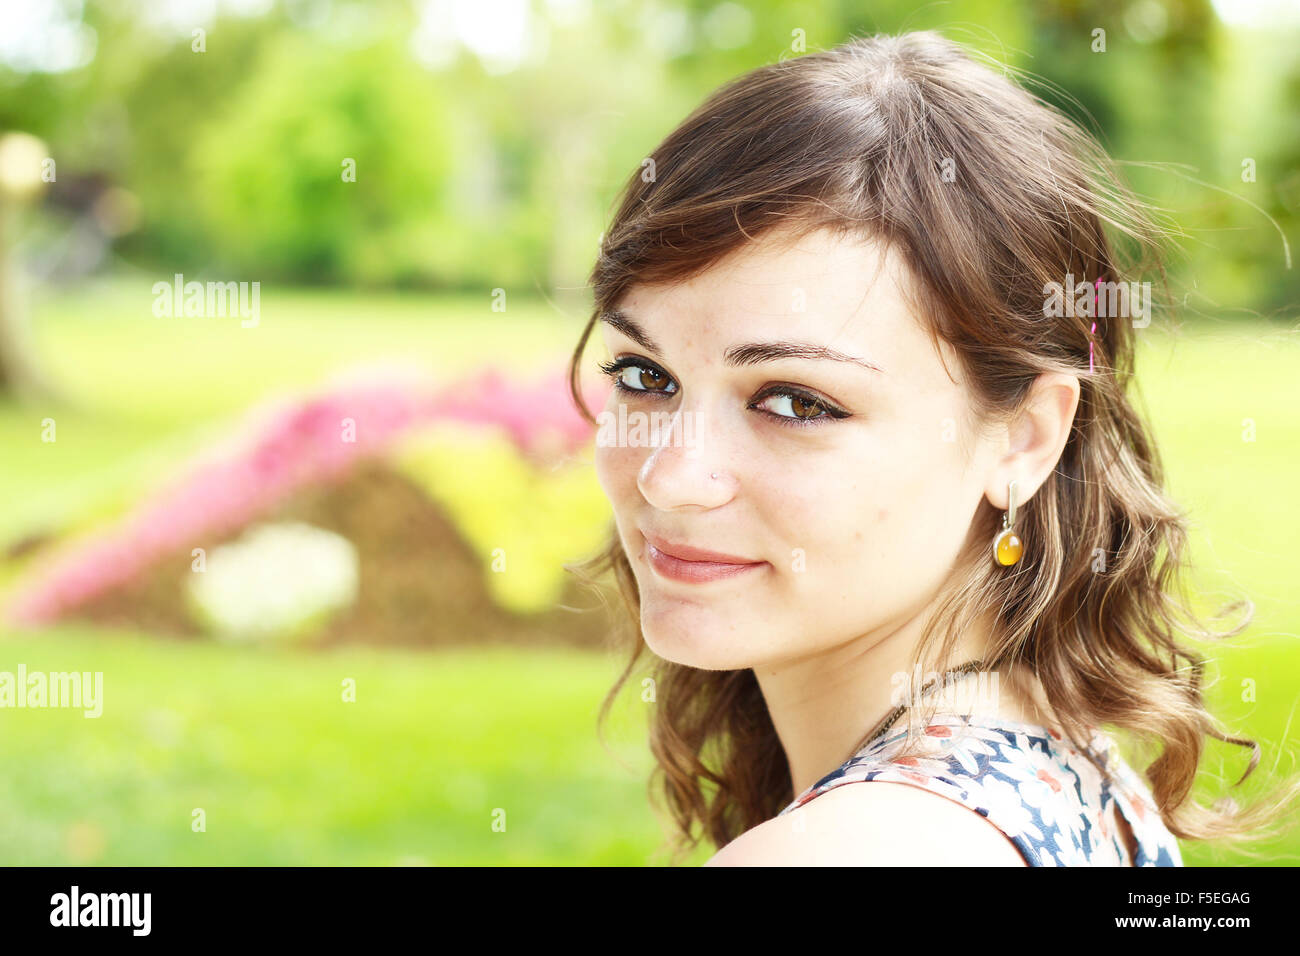 Portrait of a woman smiling Photo Stock